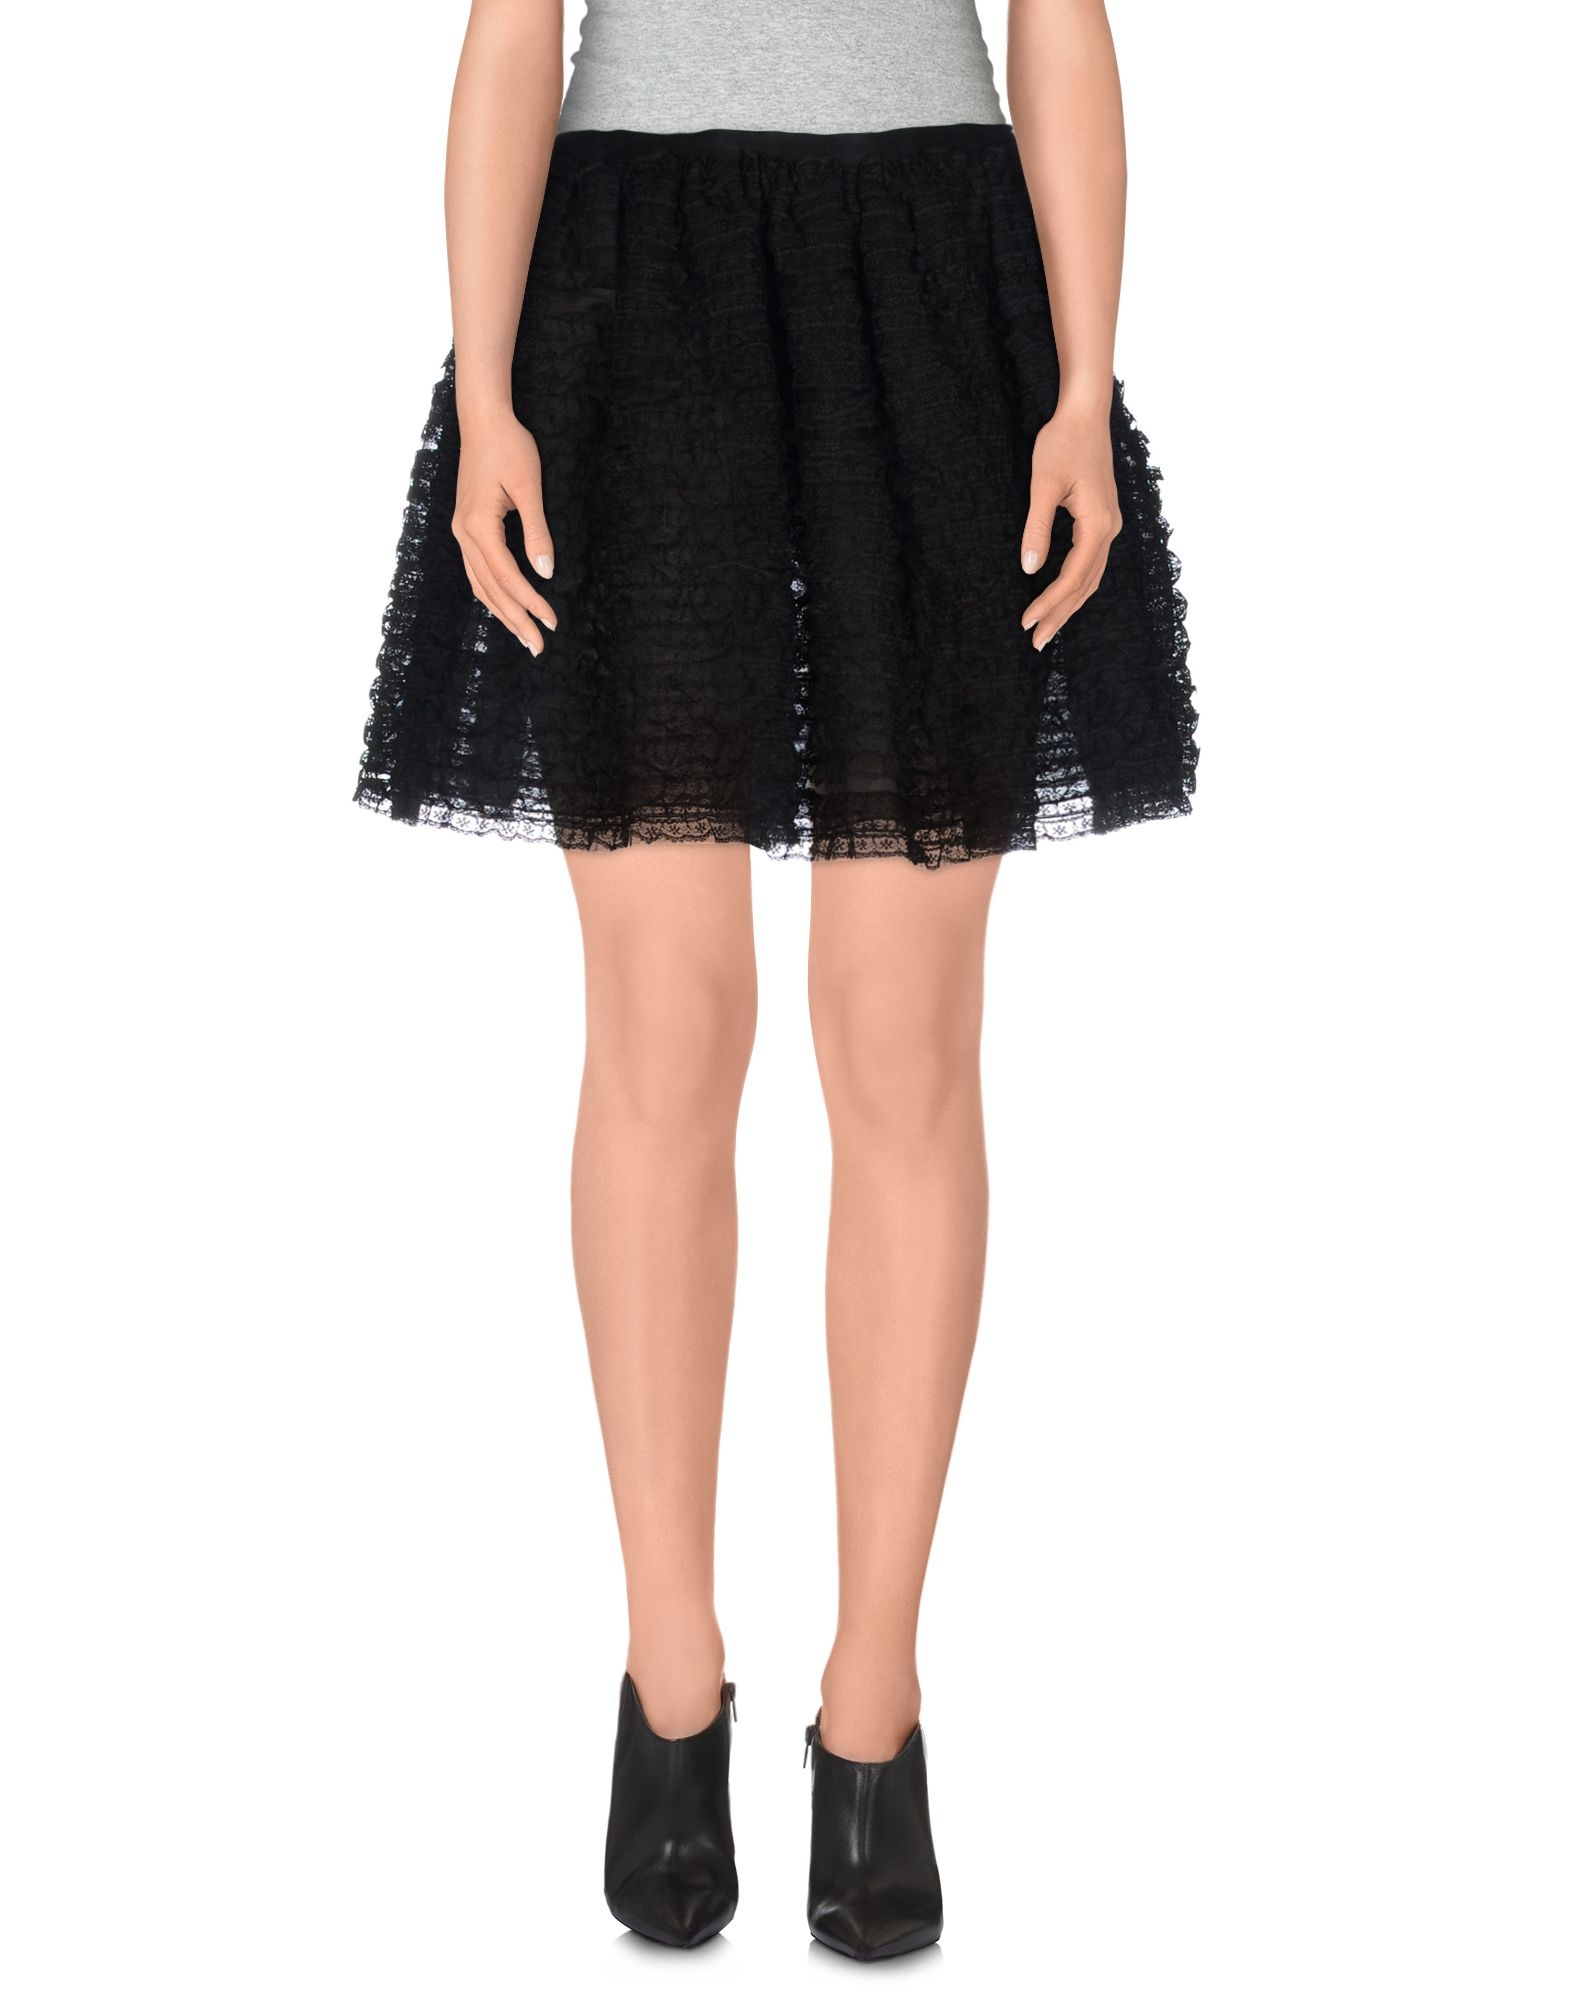 b54ddea2867 Red Valentino Skirt Sale